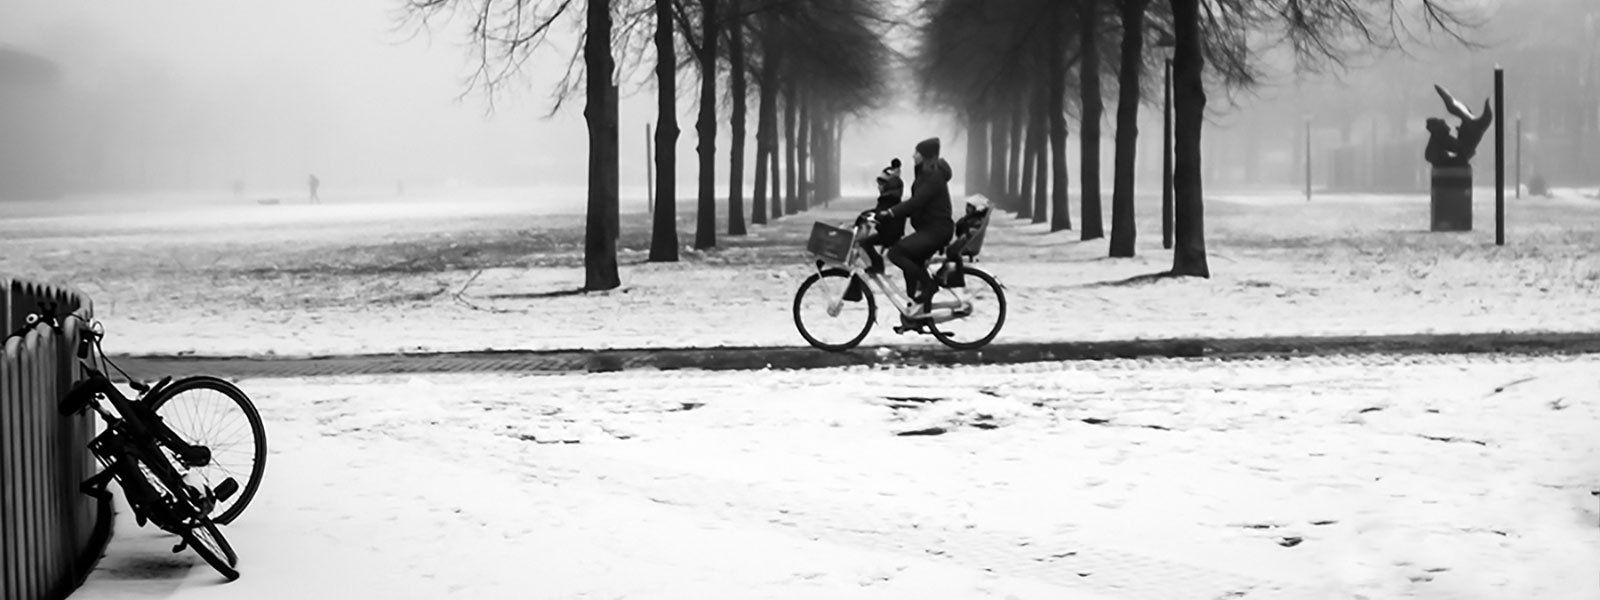 First snowfall in Amsterdam